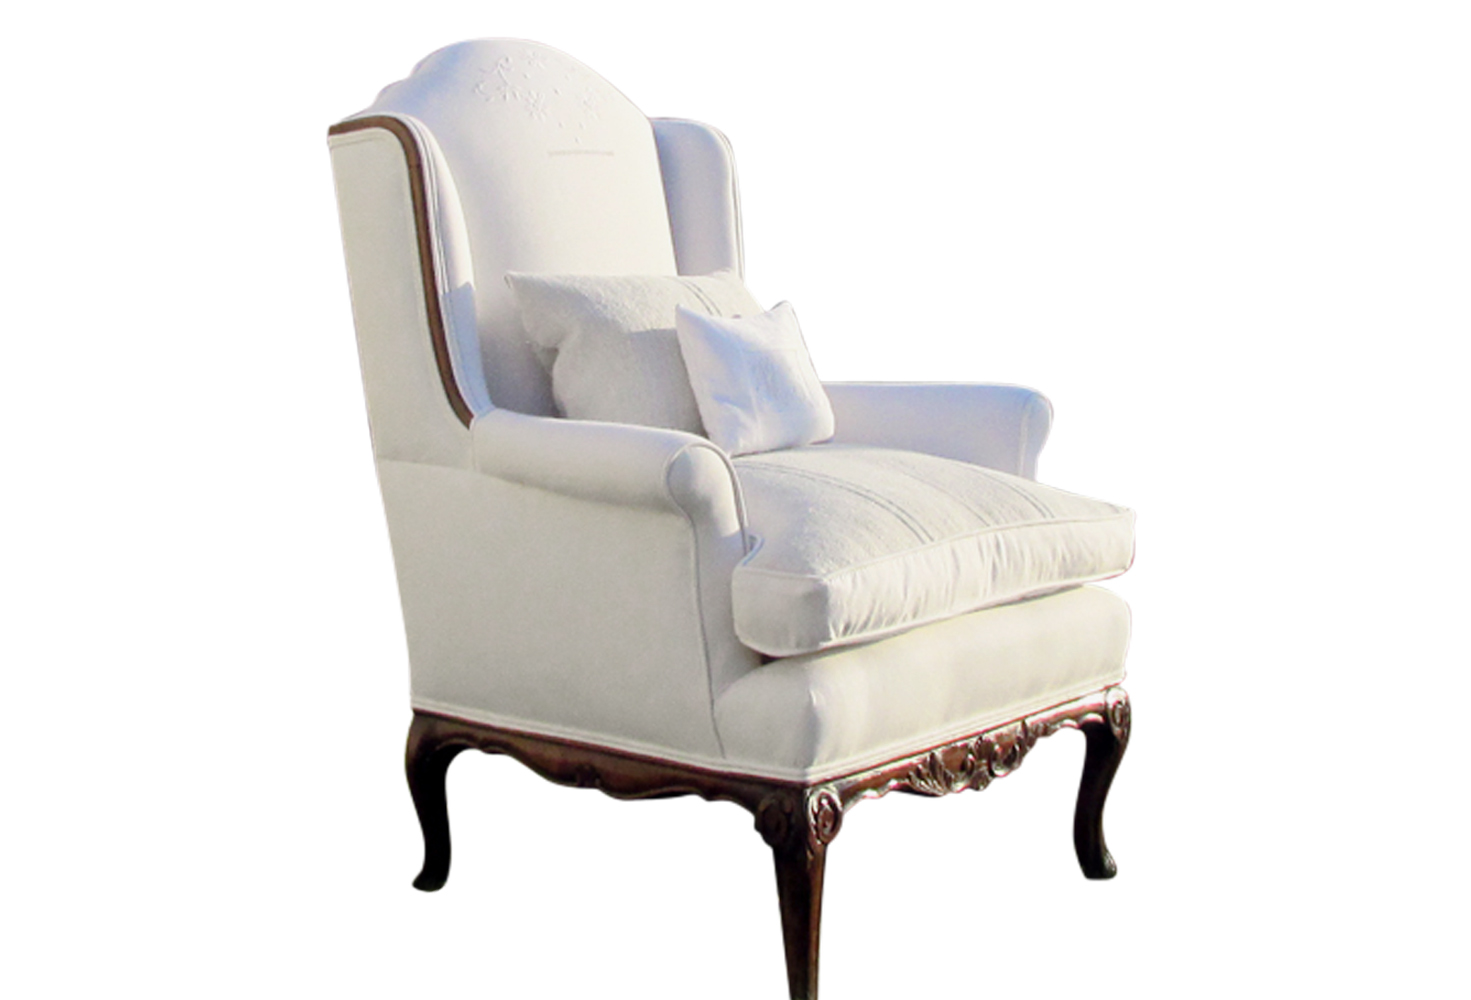 white wingback chair. 19th Century French Wing Back Chair White Wingback O